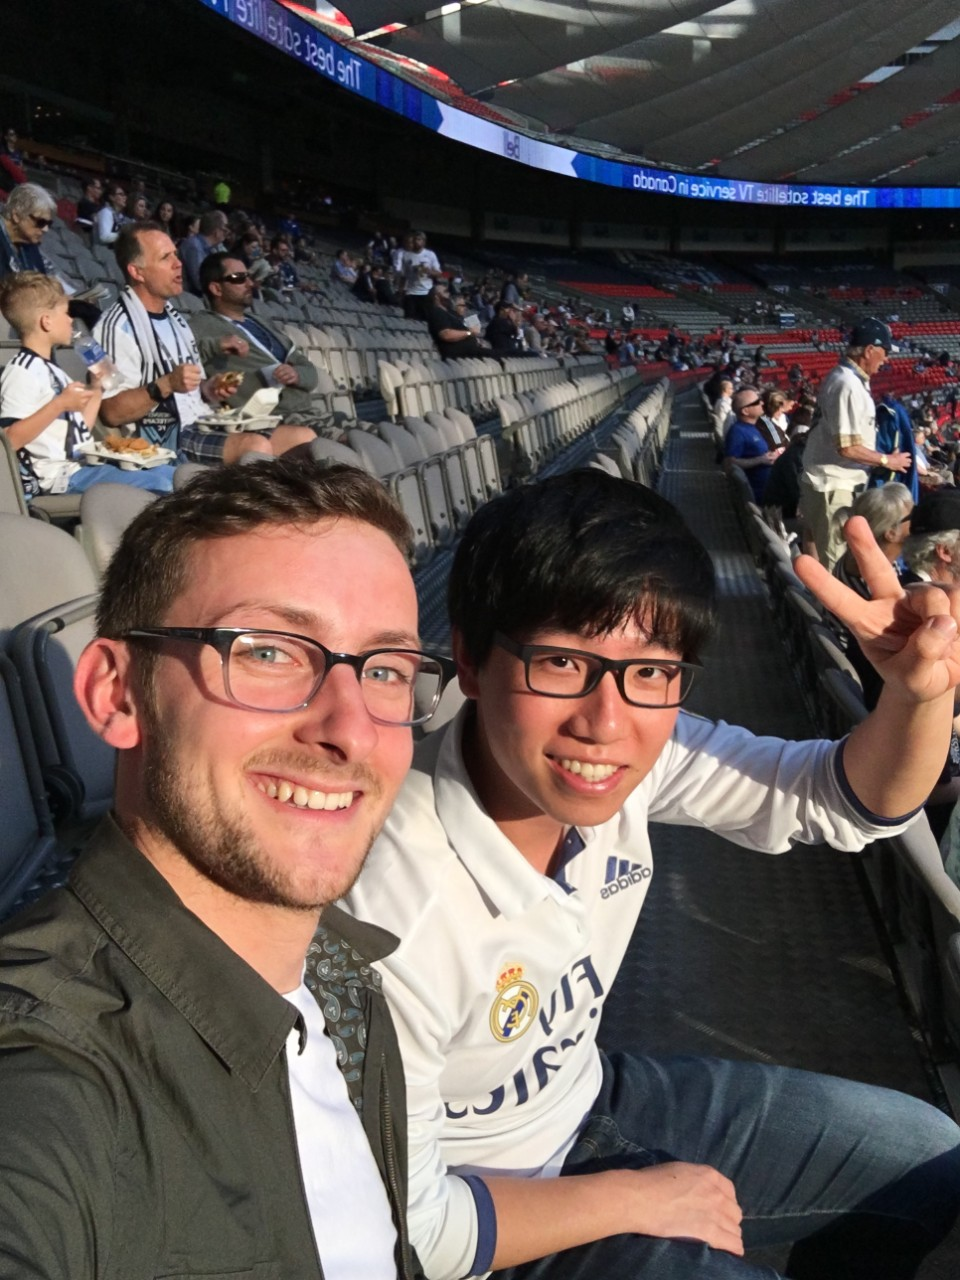 Footystats team at a Whitecaps game